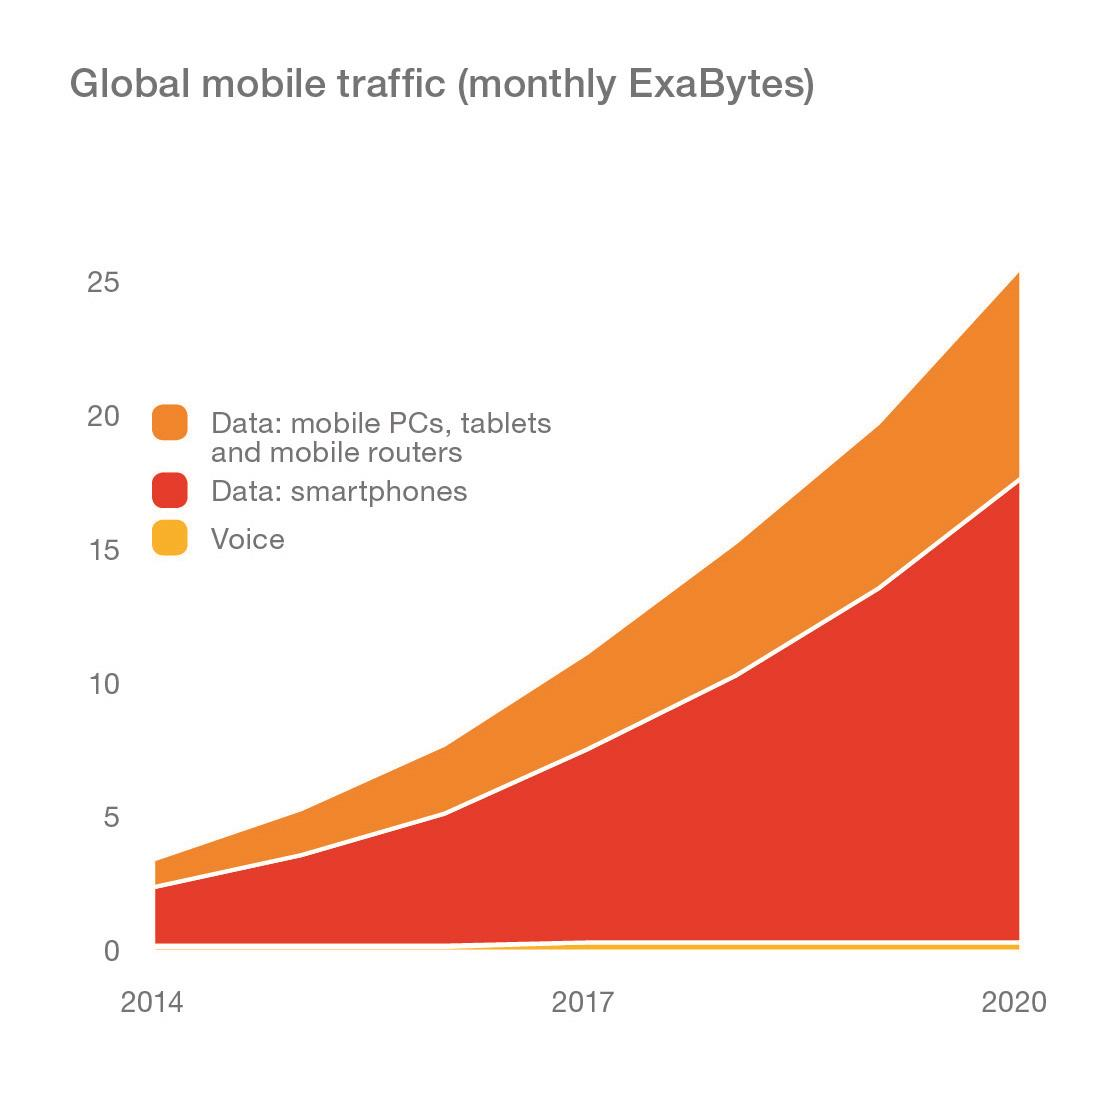 Global mobile traffic